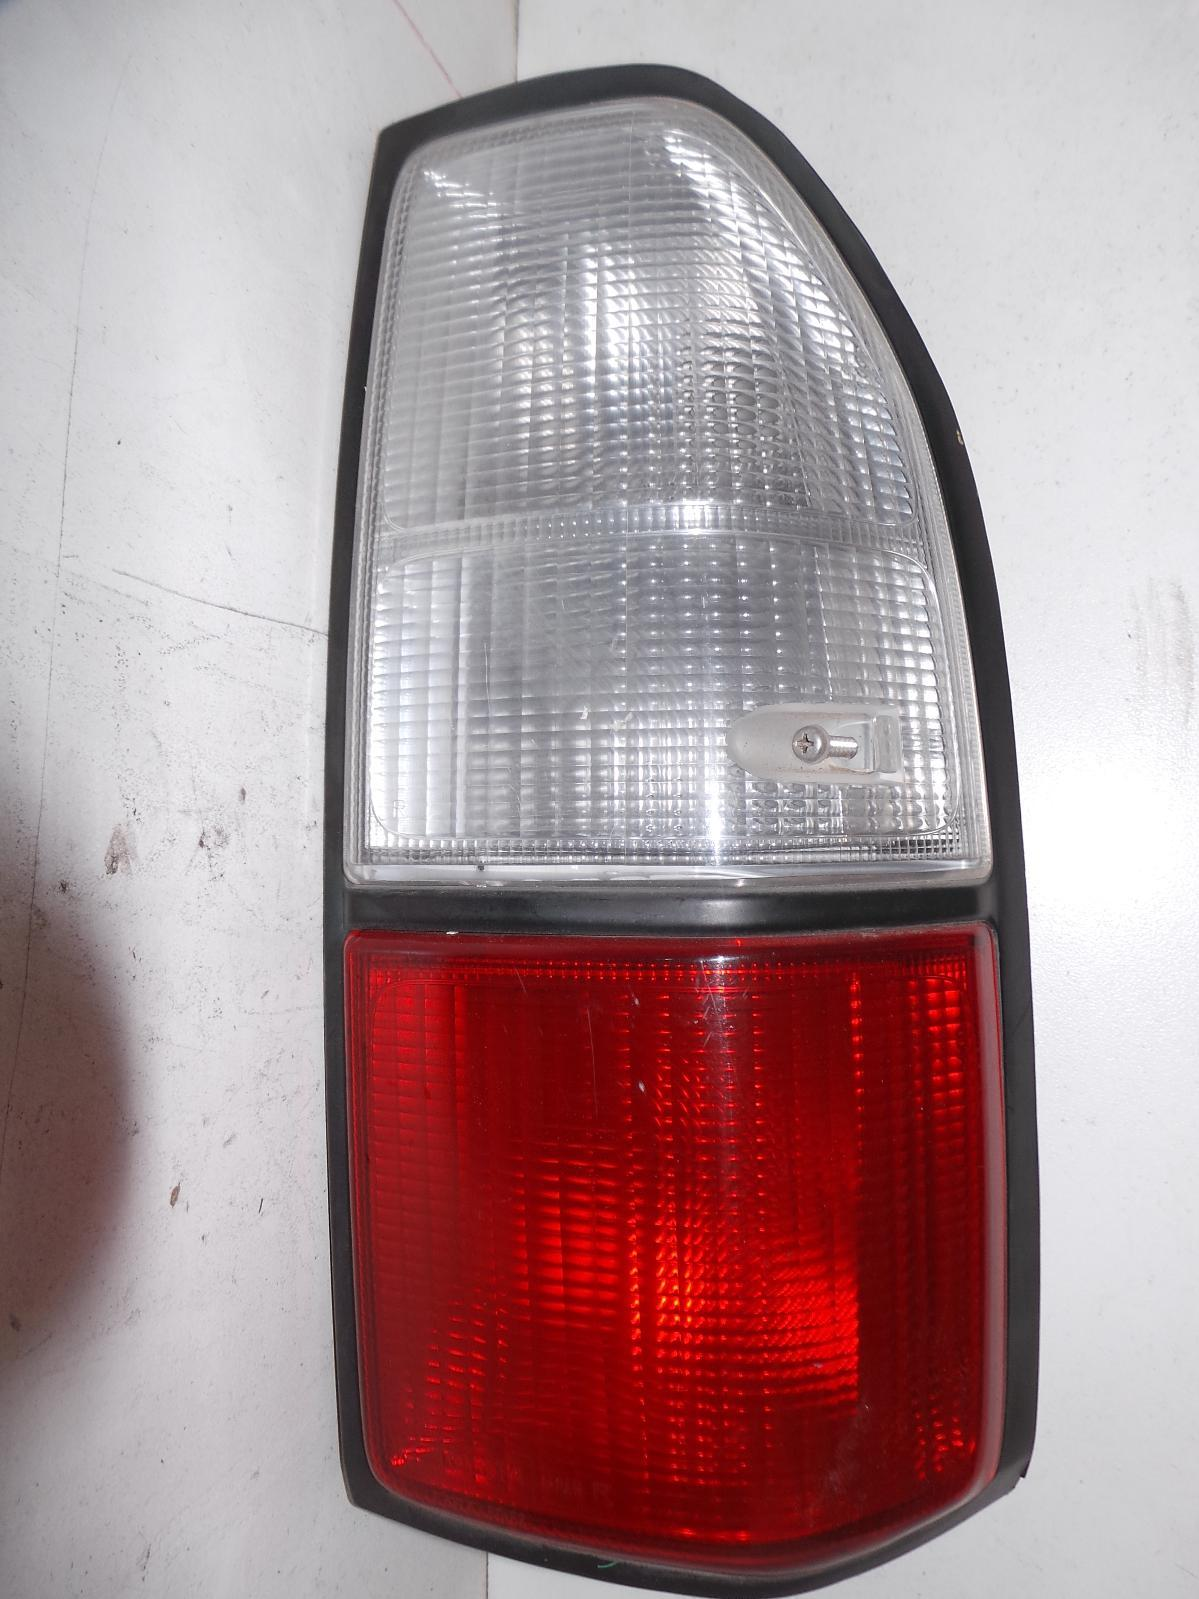 TOYOTA PRADO, Right Taillight, 95 SERIES, IN BODY, 08/99-01/03